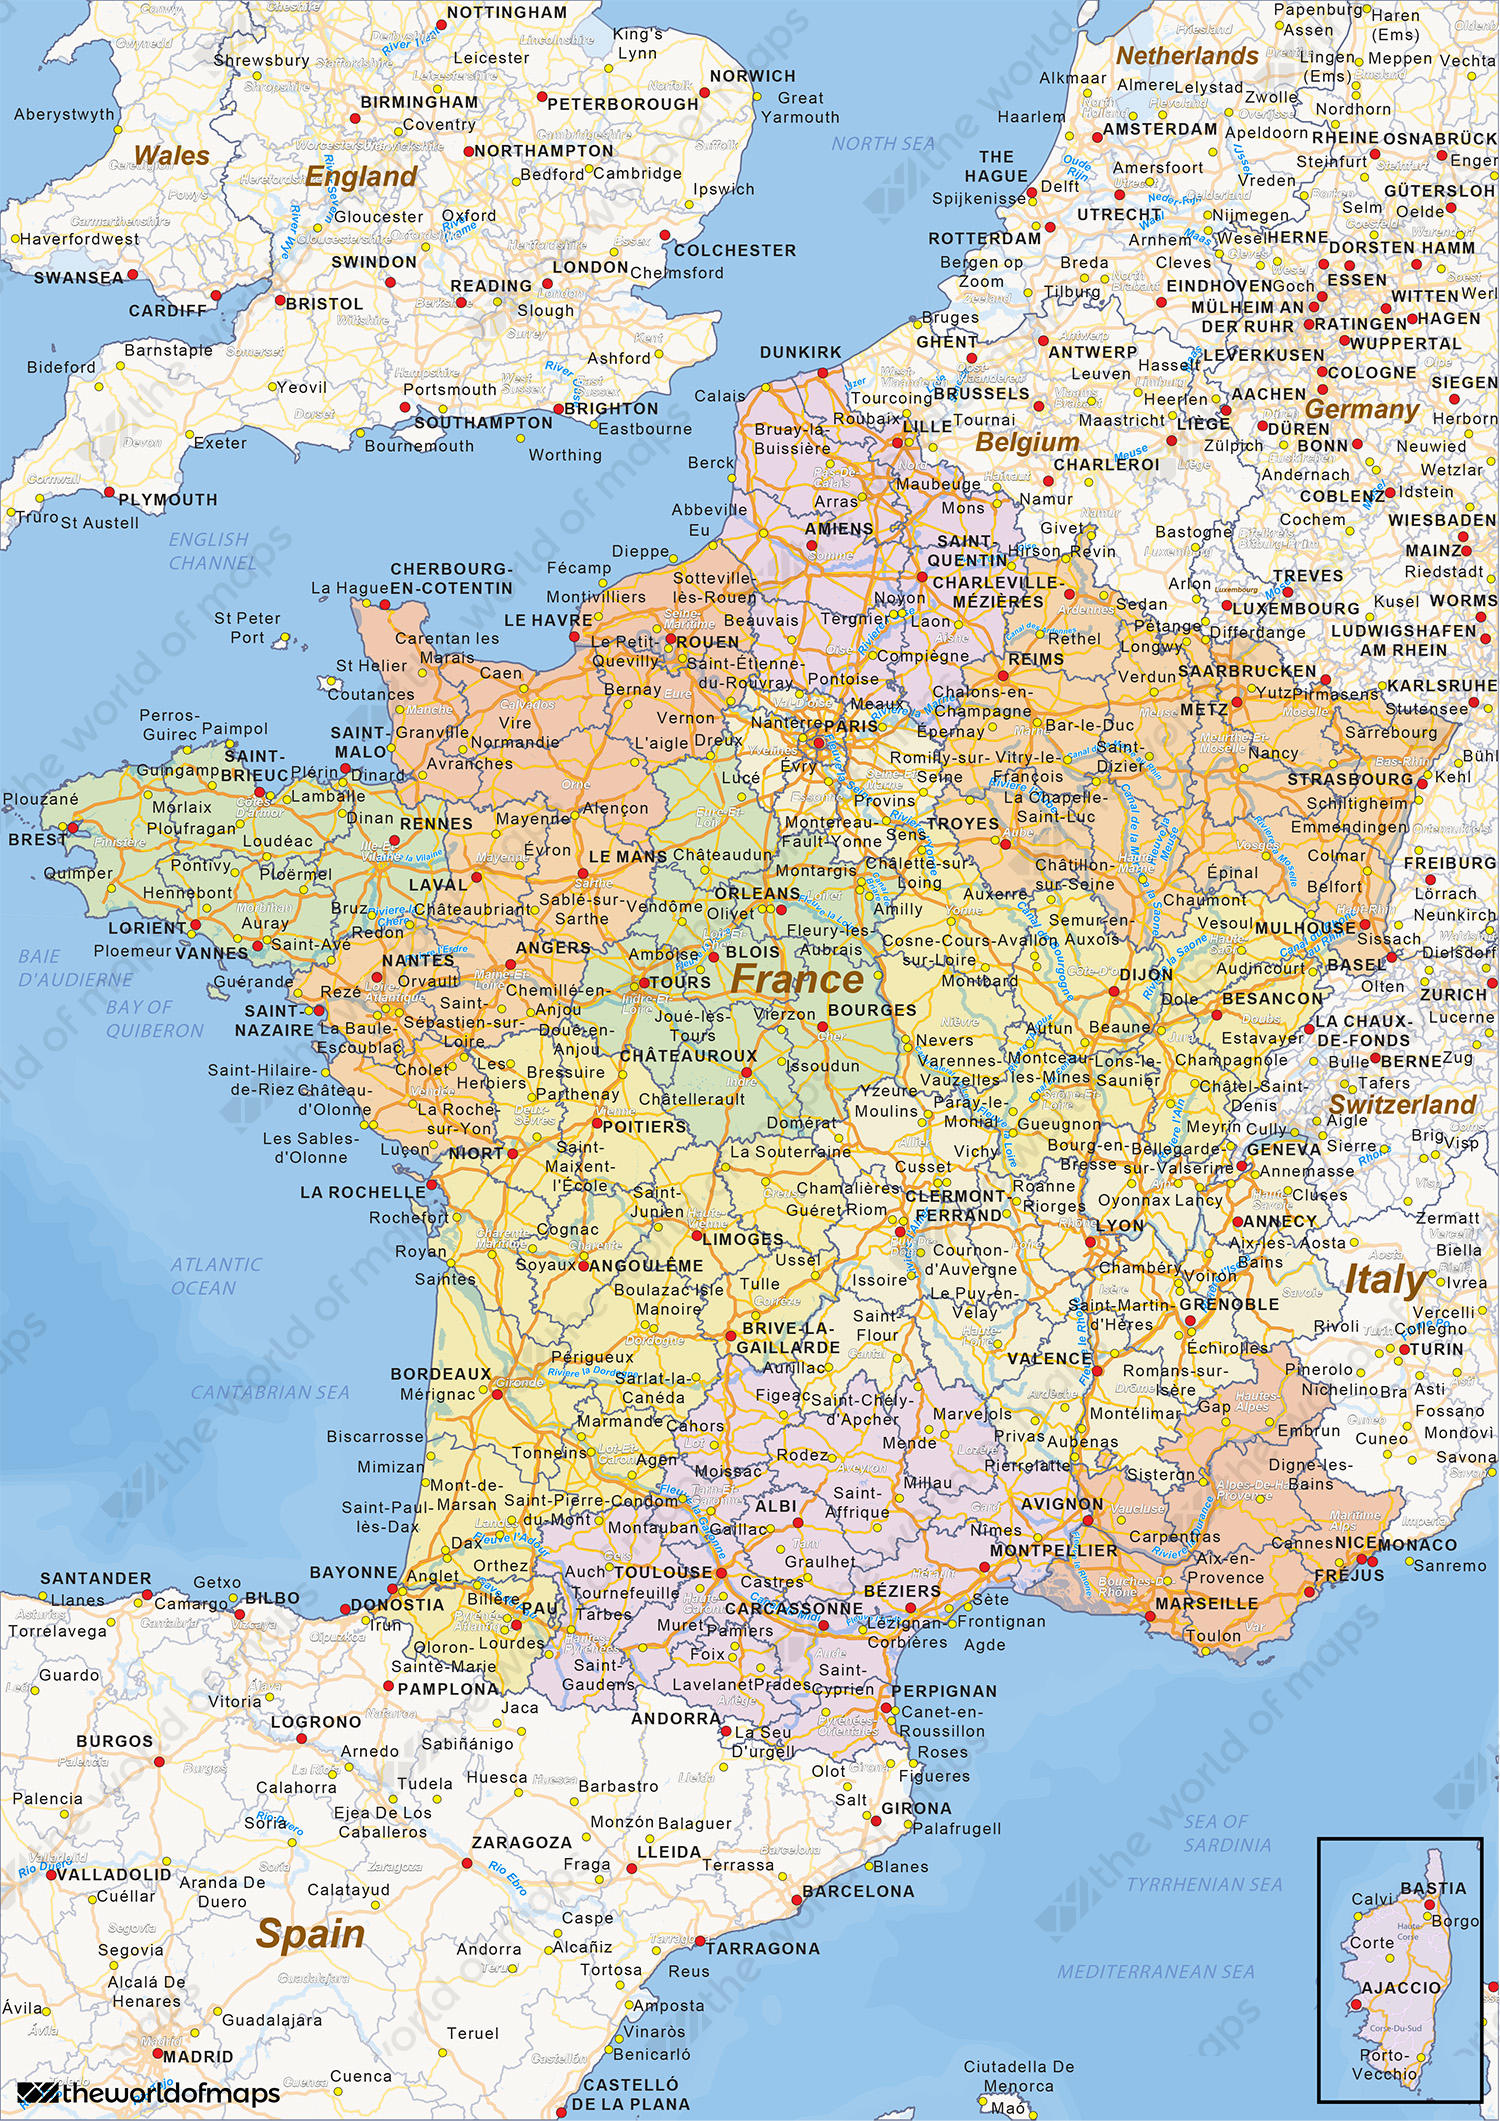 Digital political map of France